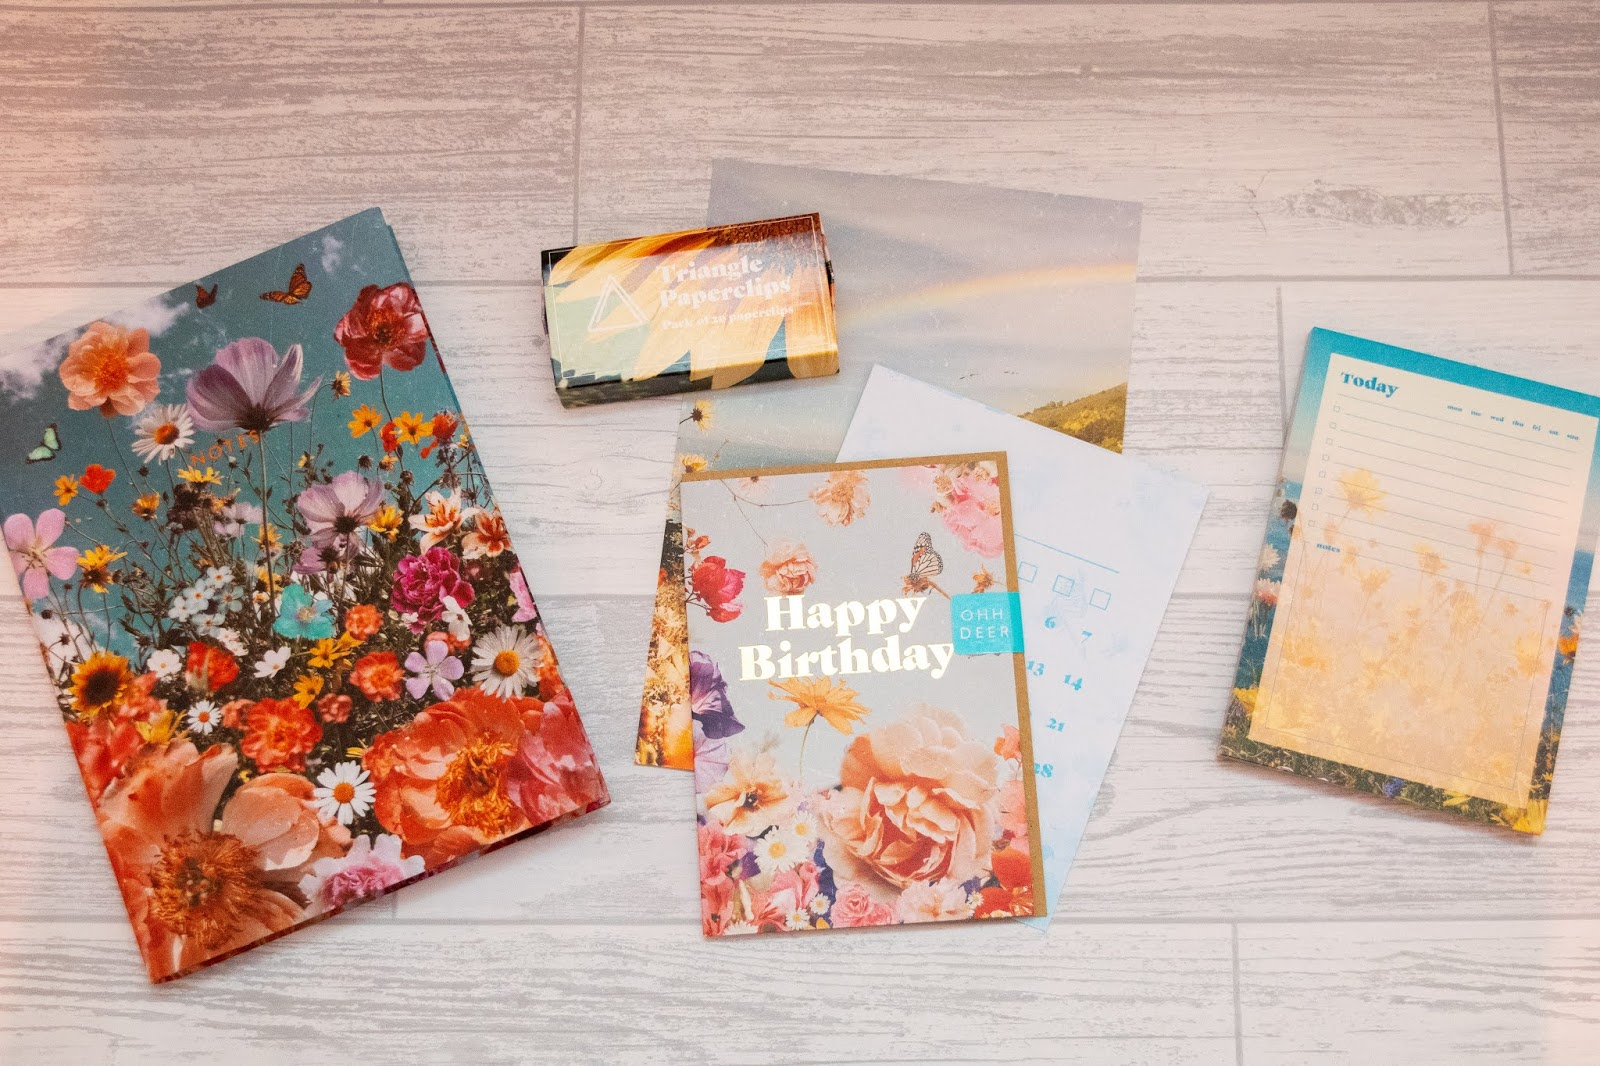 An overview of the contents of the papergang box including a notebook, paperclips and various paper stationery pieces.